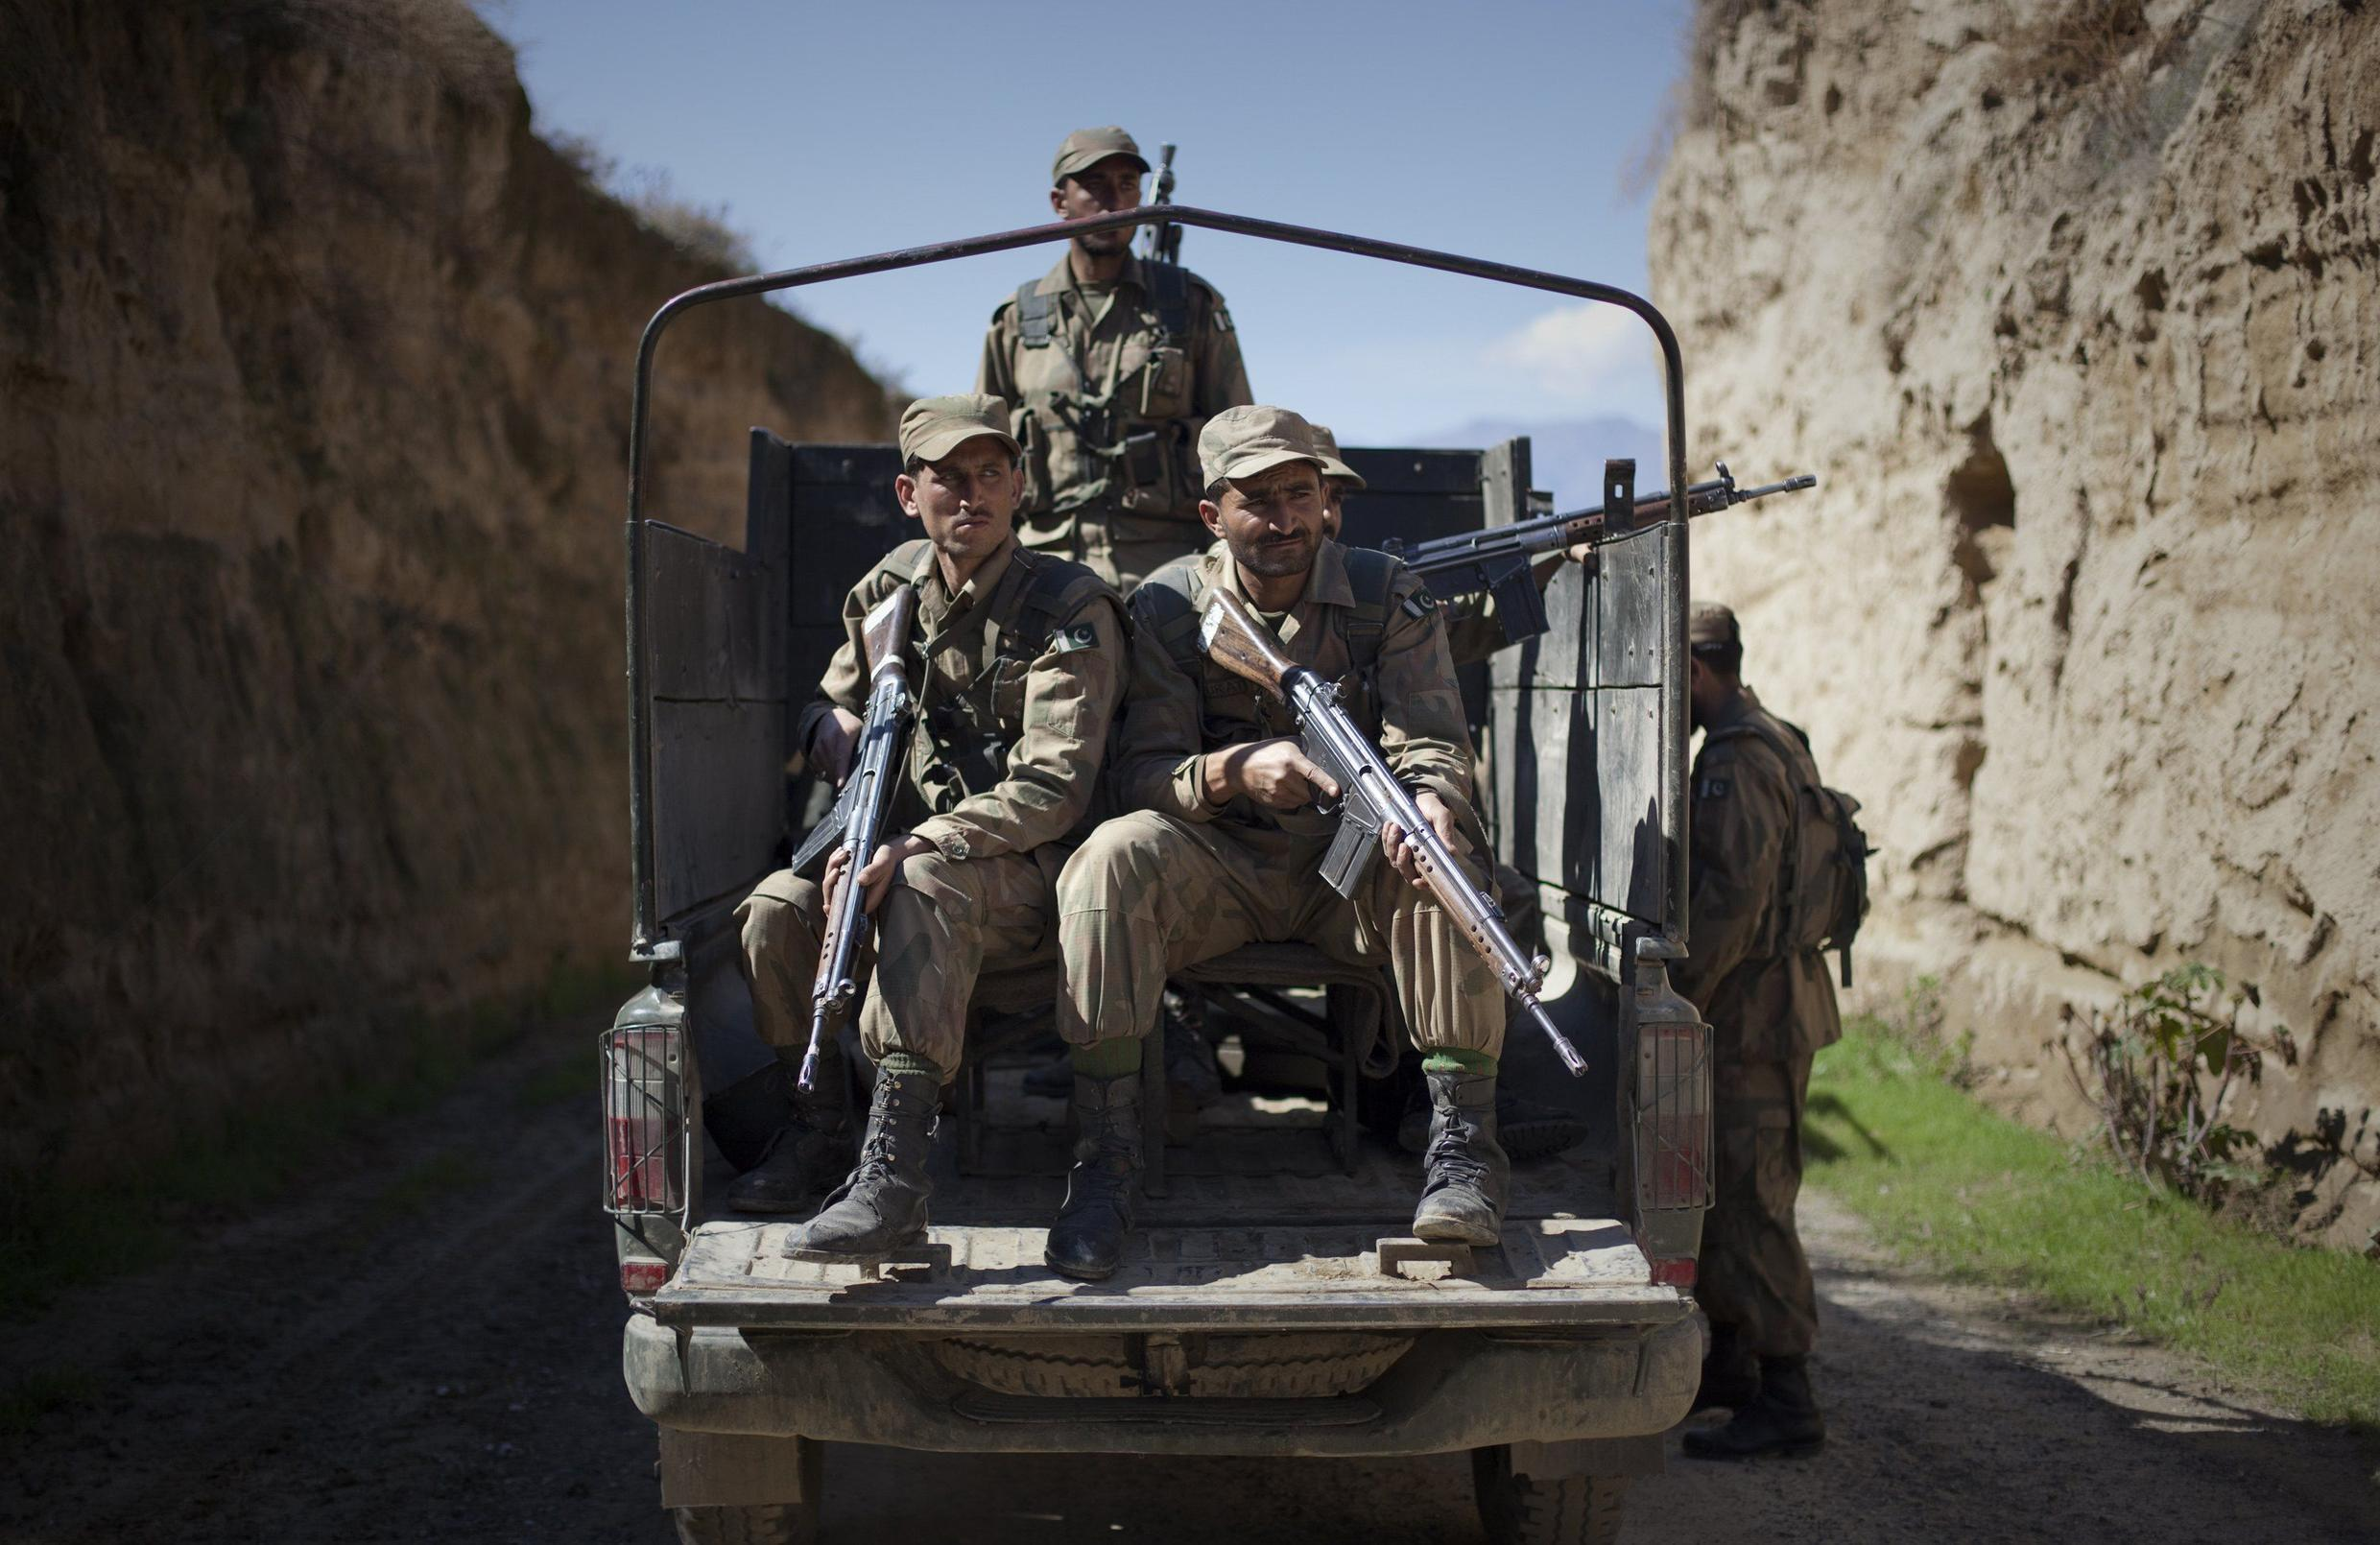 Pakistani soldiers keep guard along a road in Damadola, located in Bajaur Agency, in the country's tribal belt